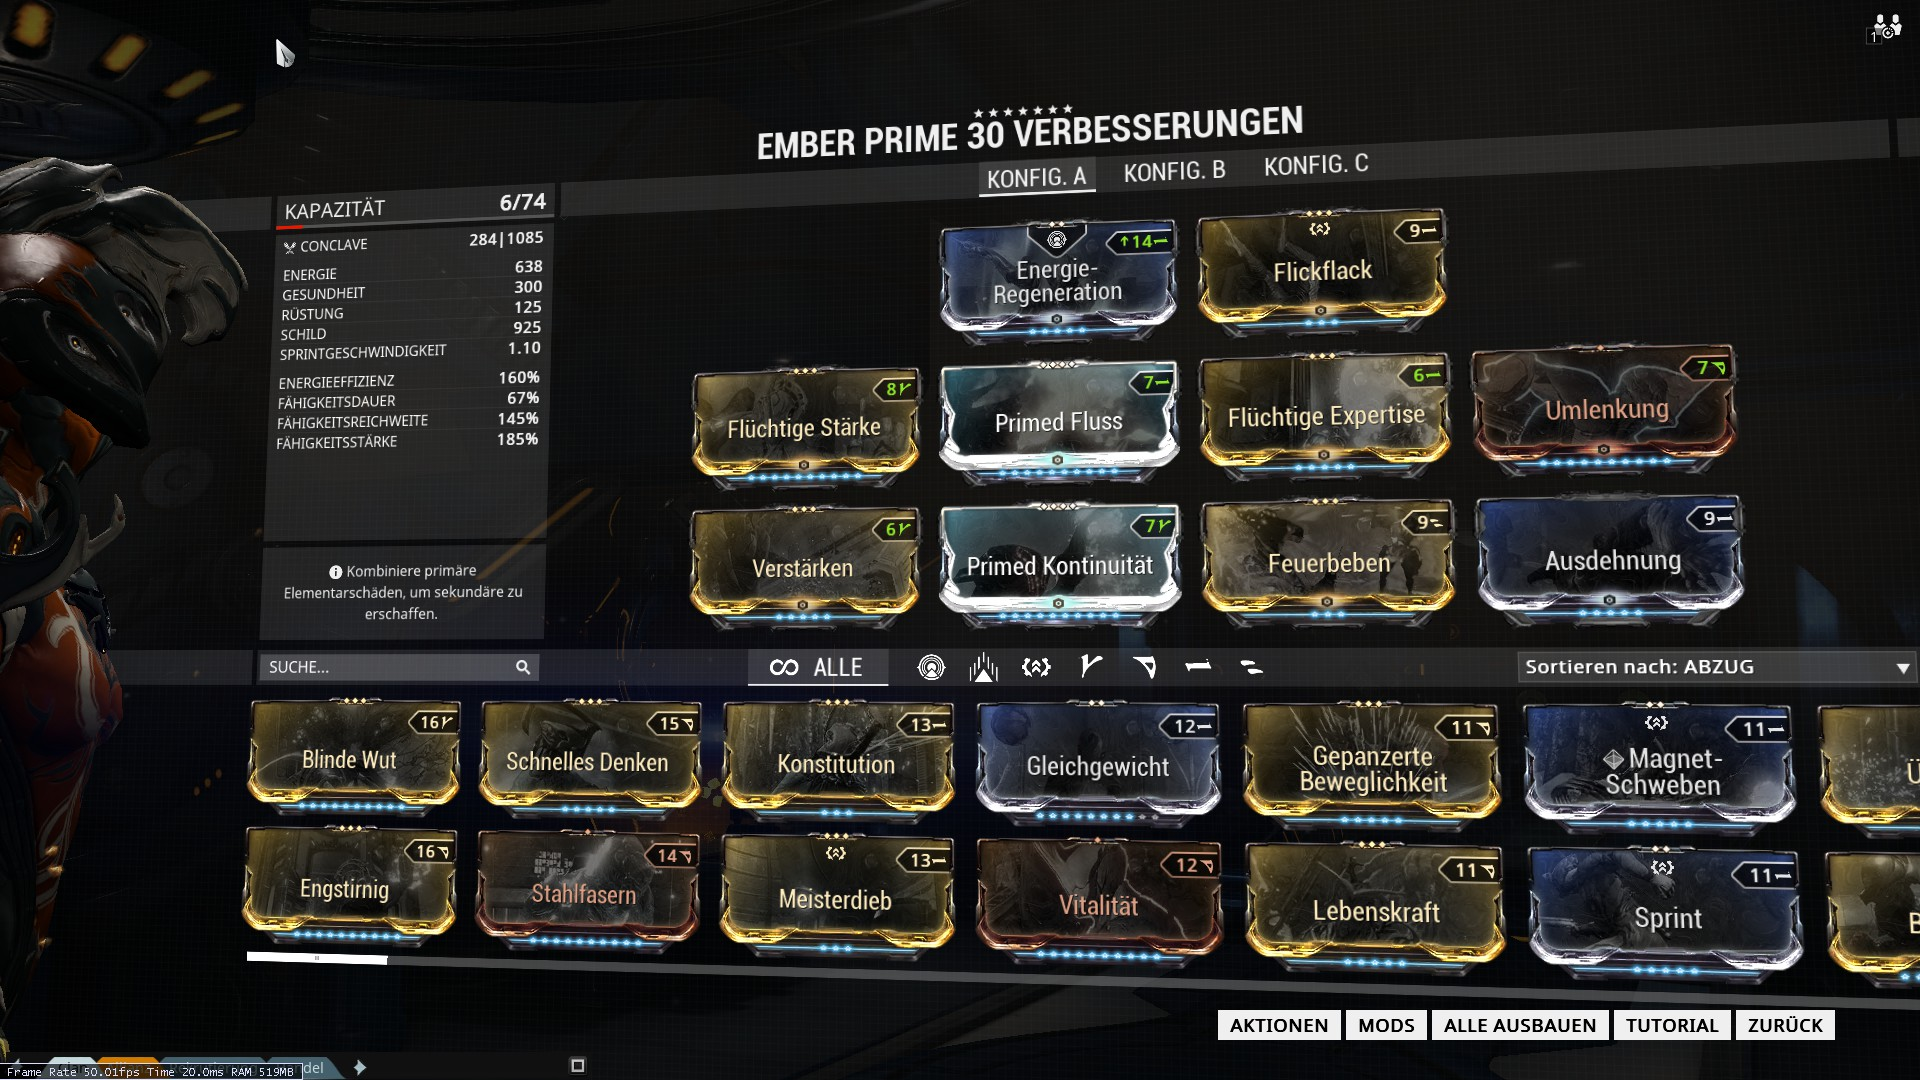 Steam Community Guide Wie Modde Ich Meine Warframes Richtig Possessing a higher energy capacity and shield capacity, as well as an additional polarity. wie modde ich meine warframes richtig